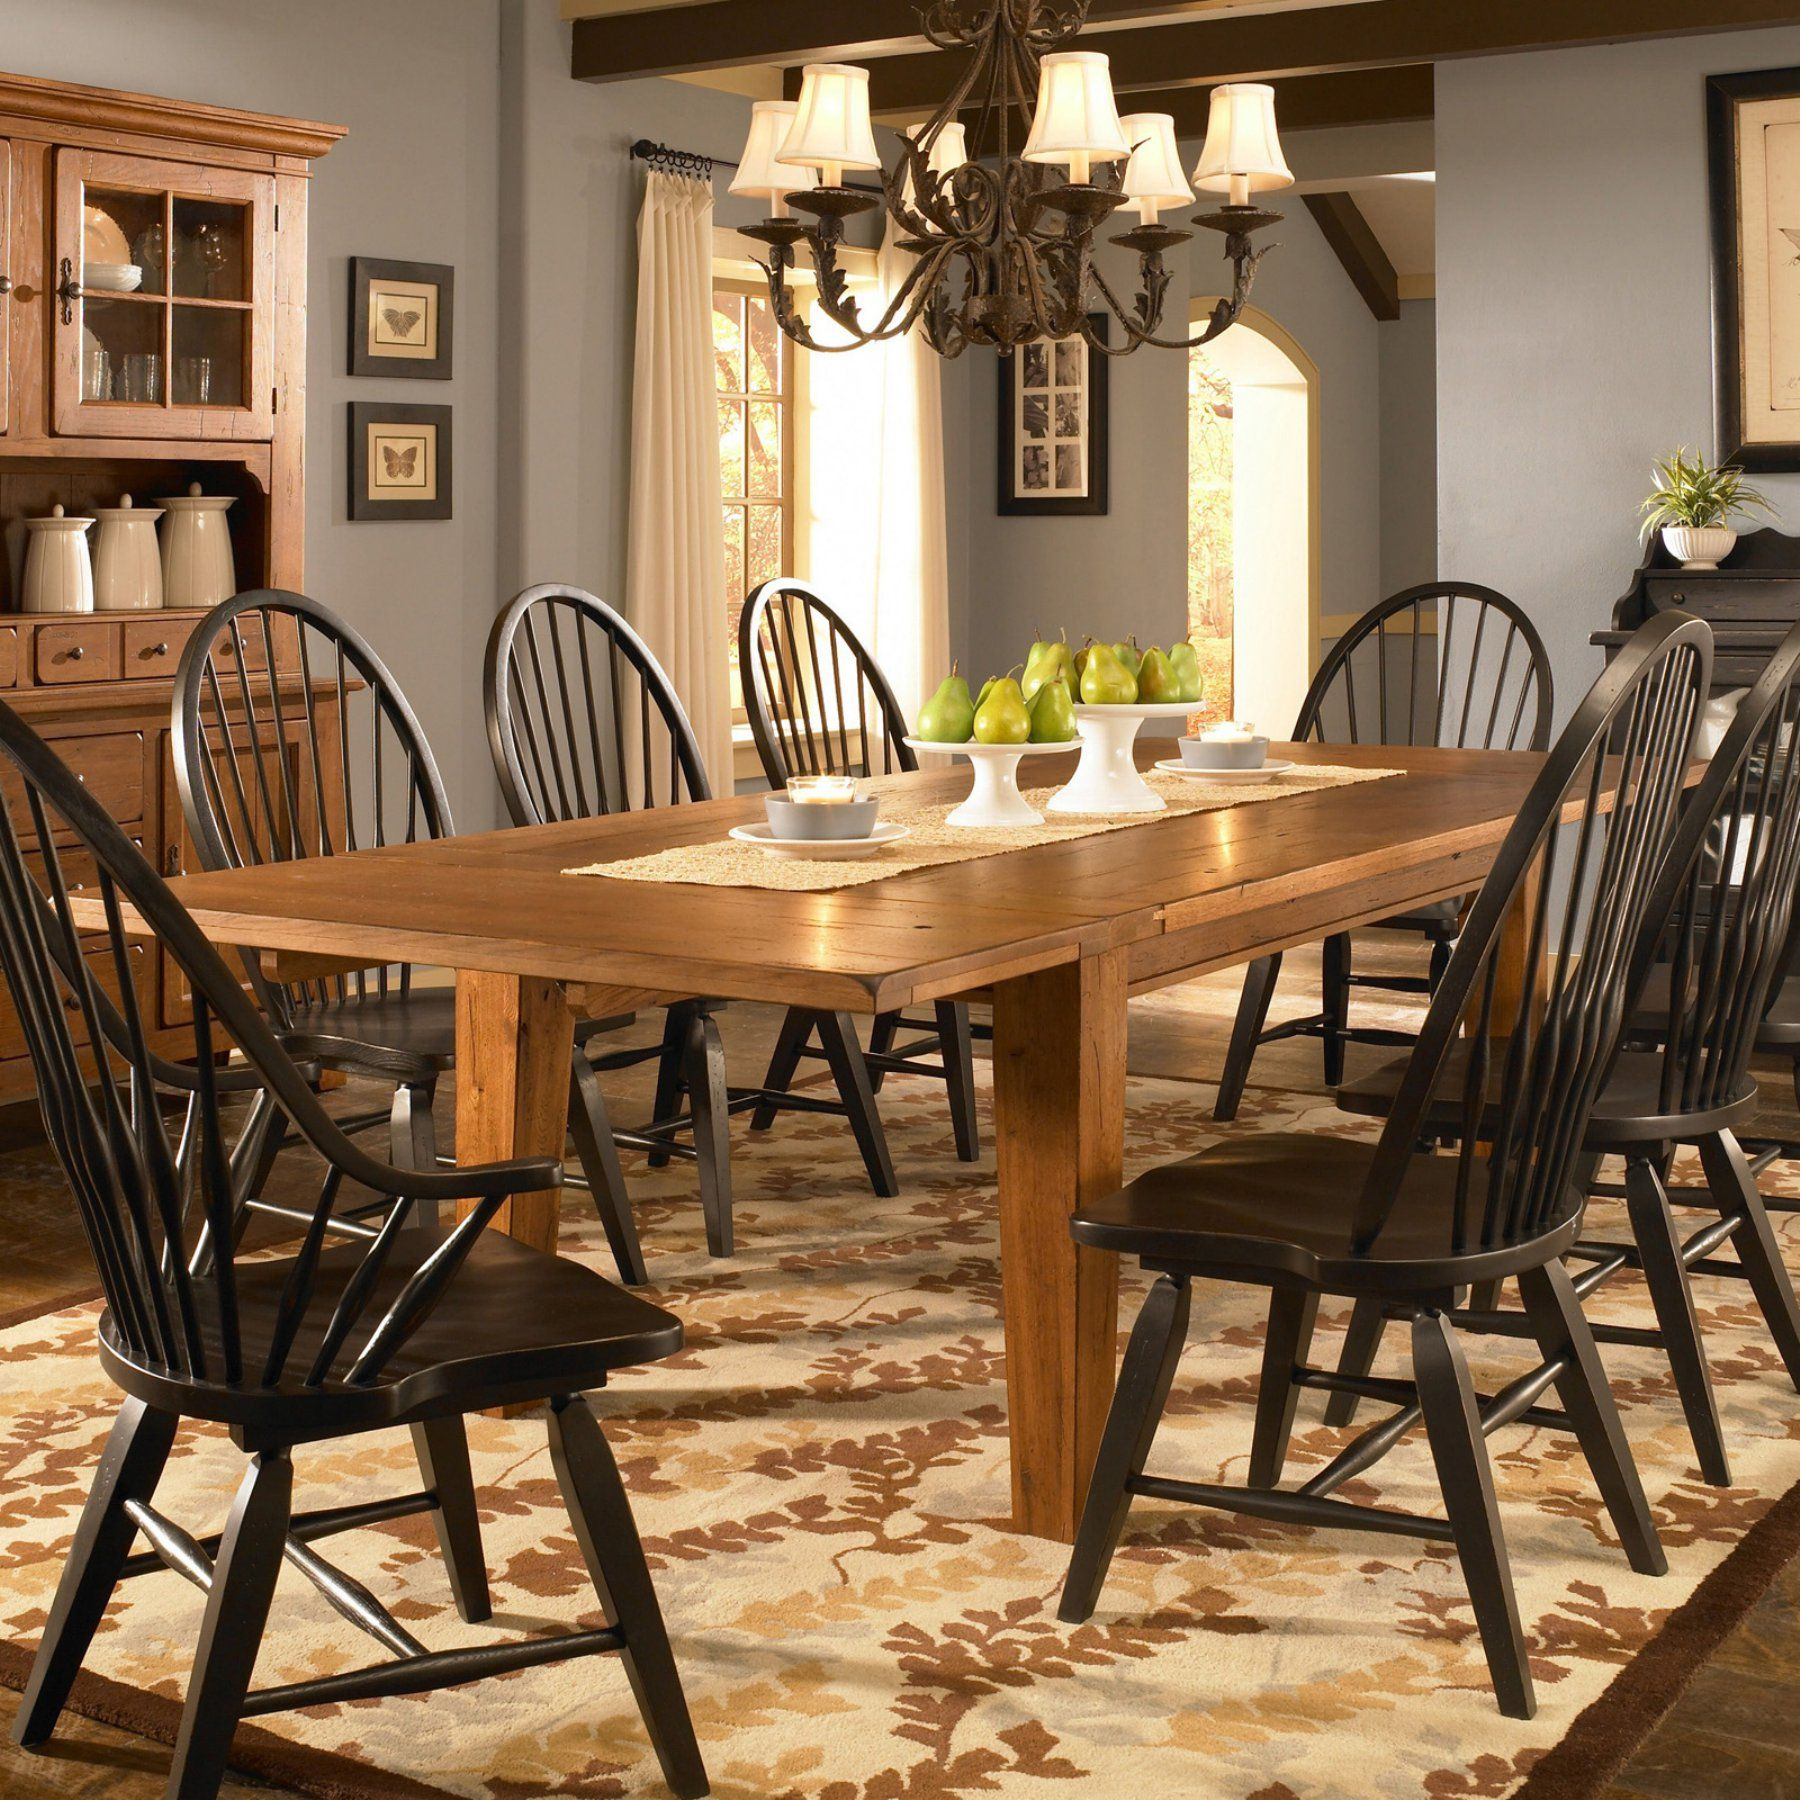 Broyhill Attic Heirlooms 72 In Rectangular Dining Table With